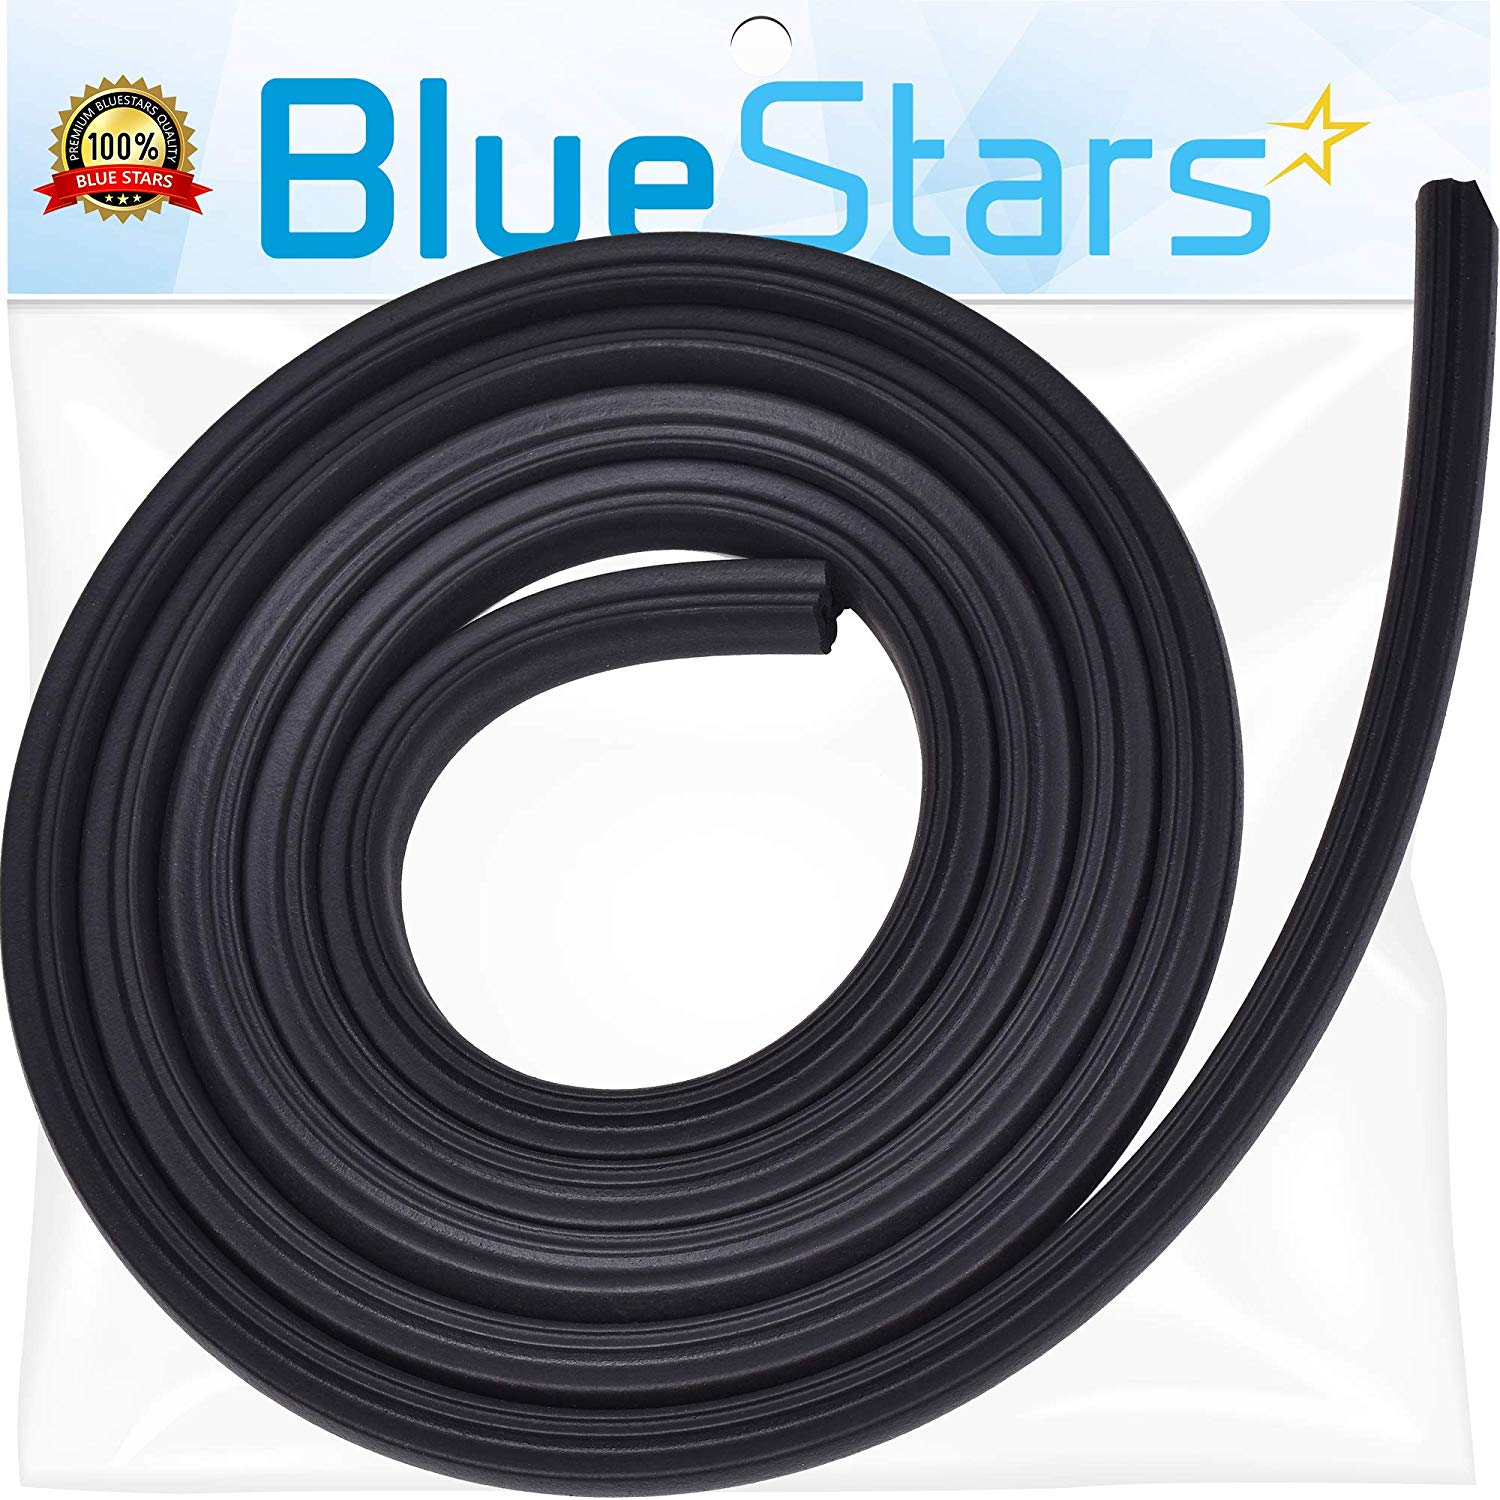 Blue Stars Ultra-durable Door Gasket